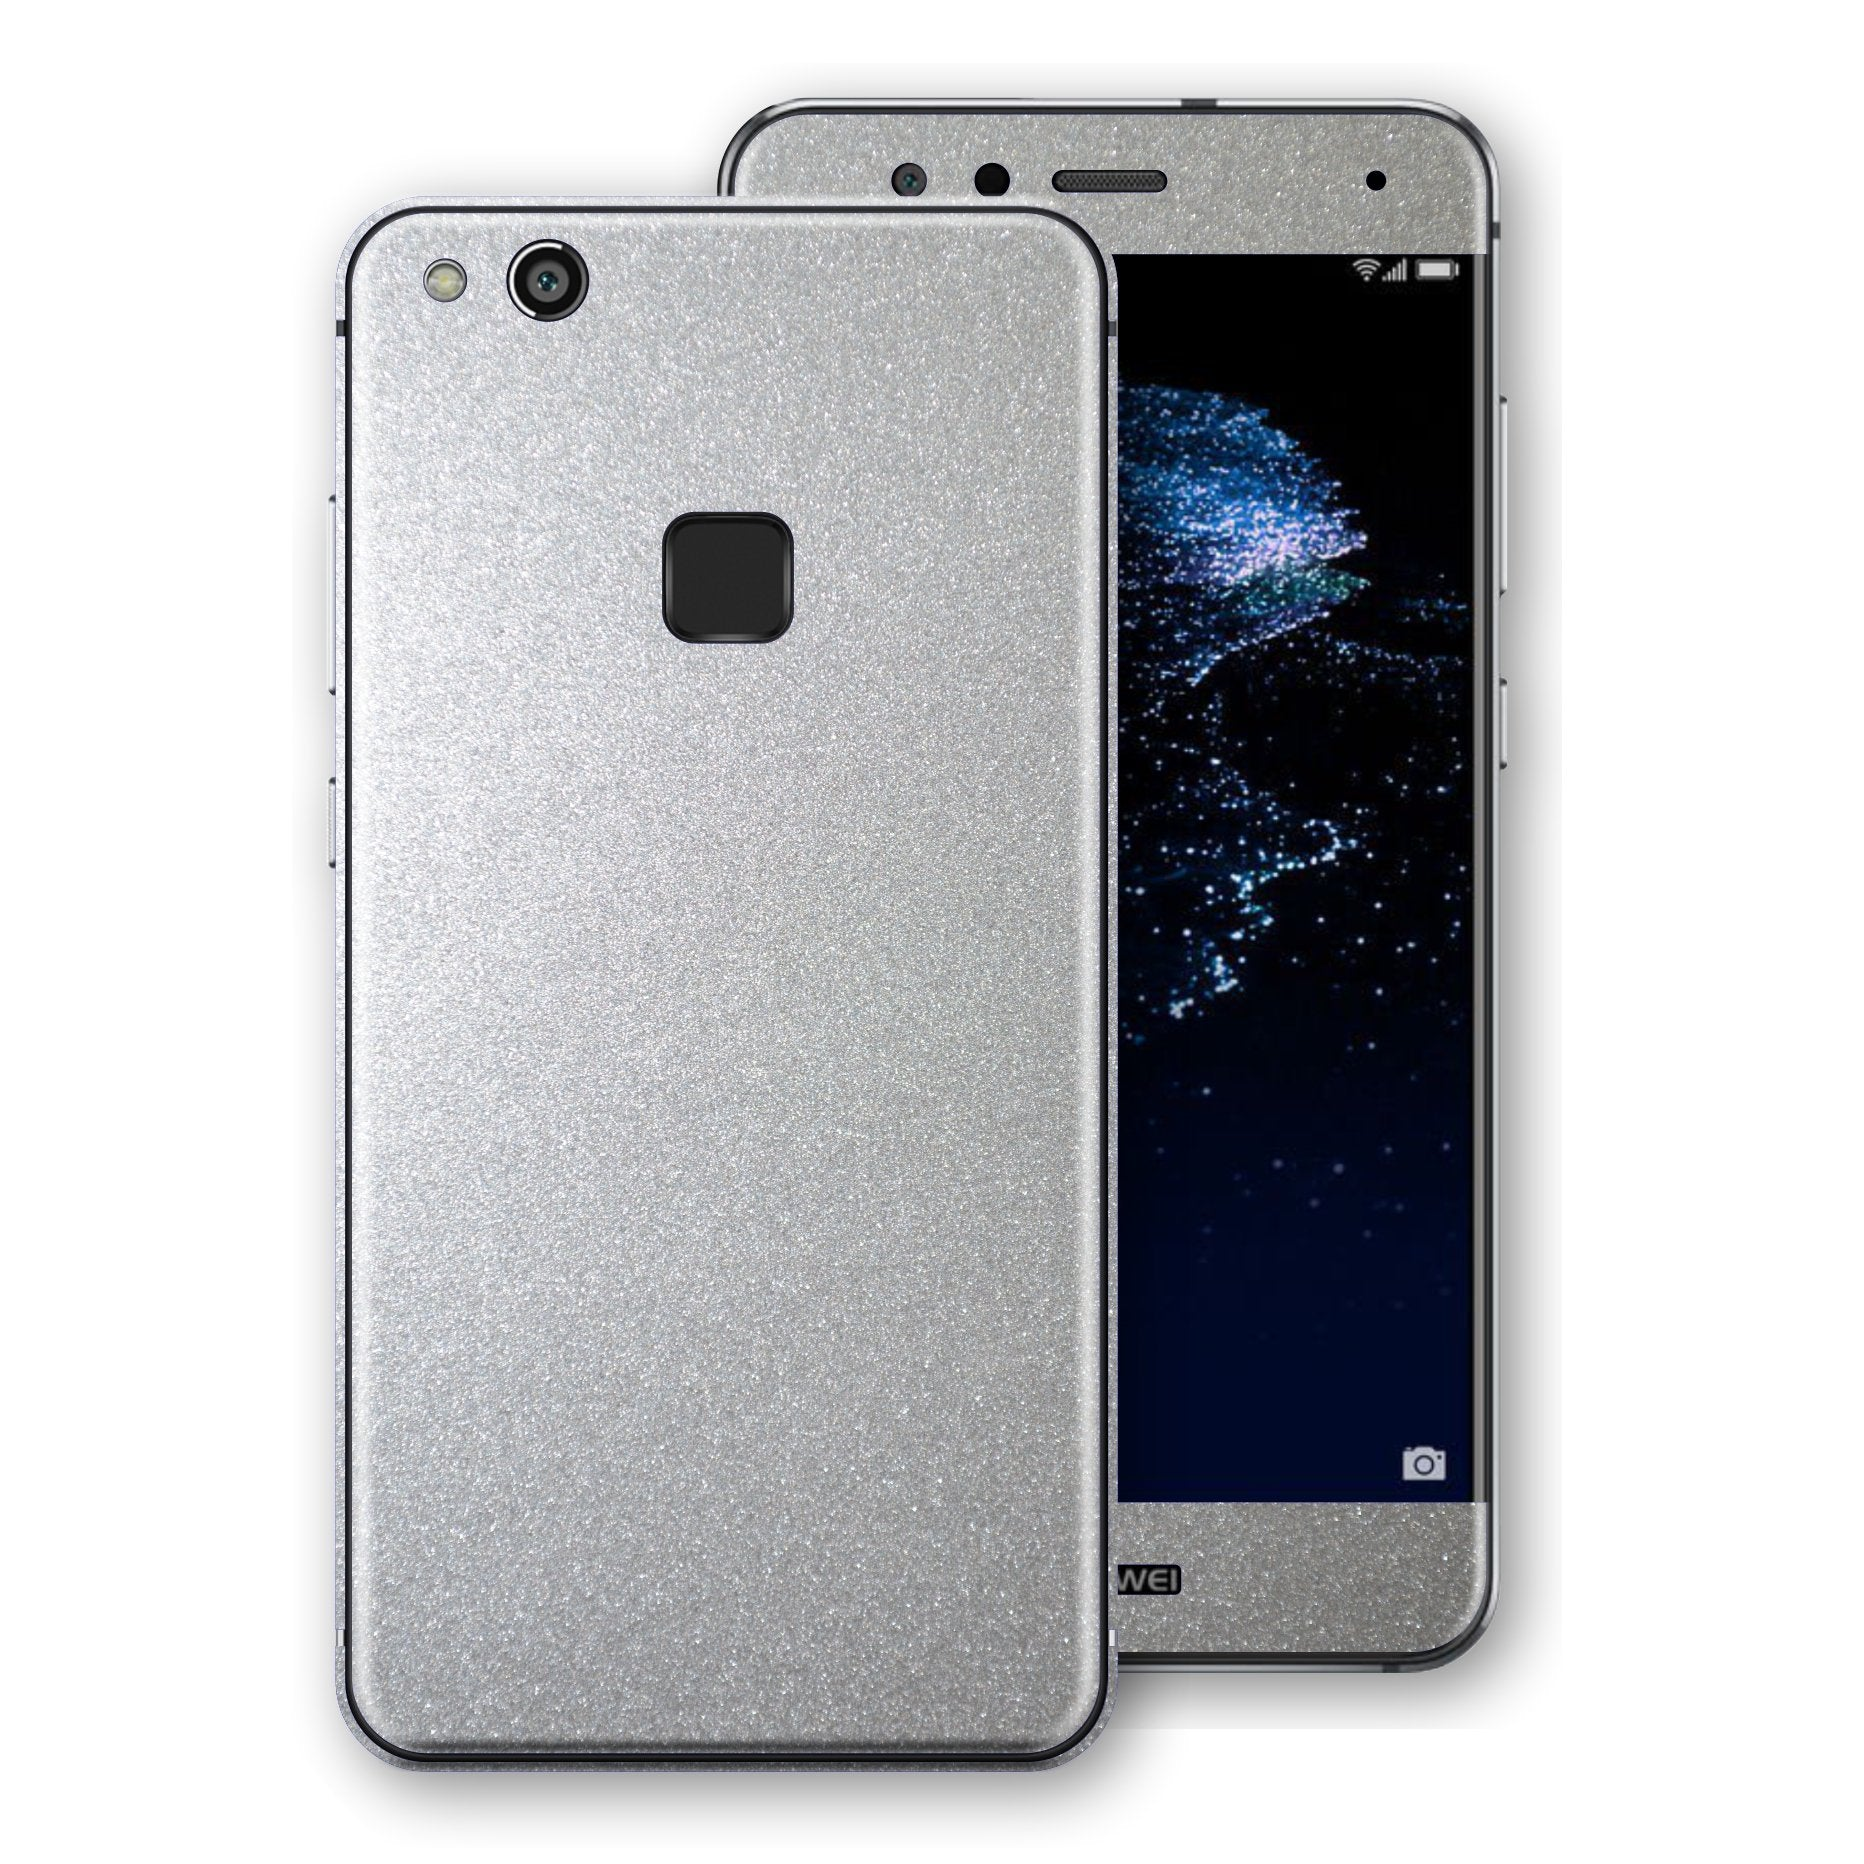 Huawei P10 LITE Silver Glossy Metallic Skin, Decal, Wrap, Protector, Cover by EasySkinz | EasySkinz.com